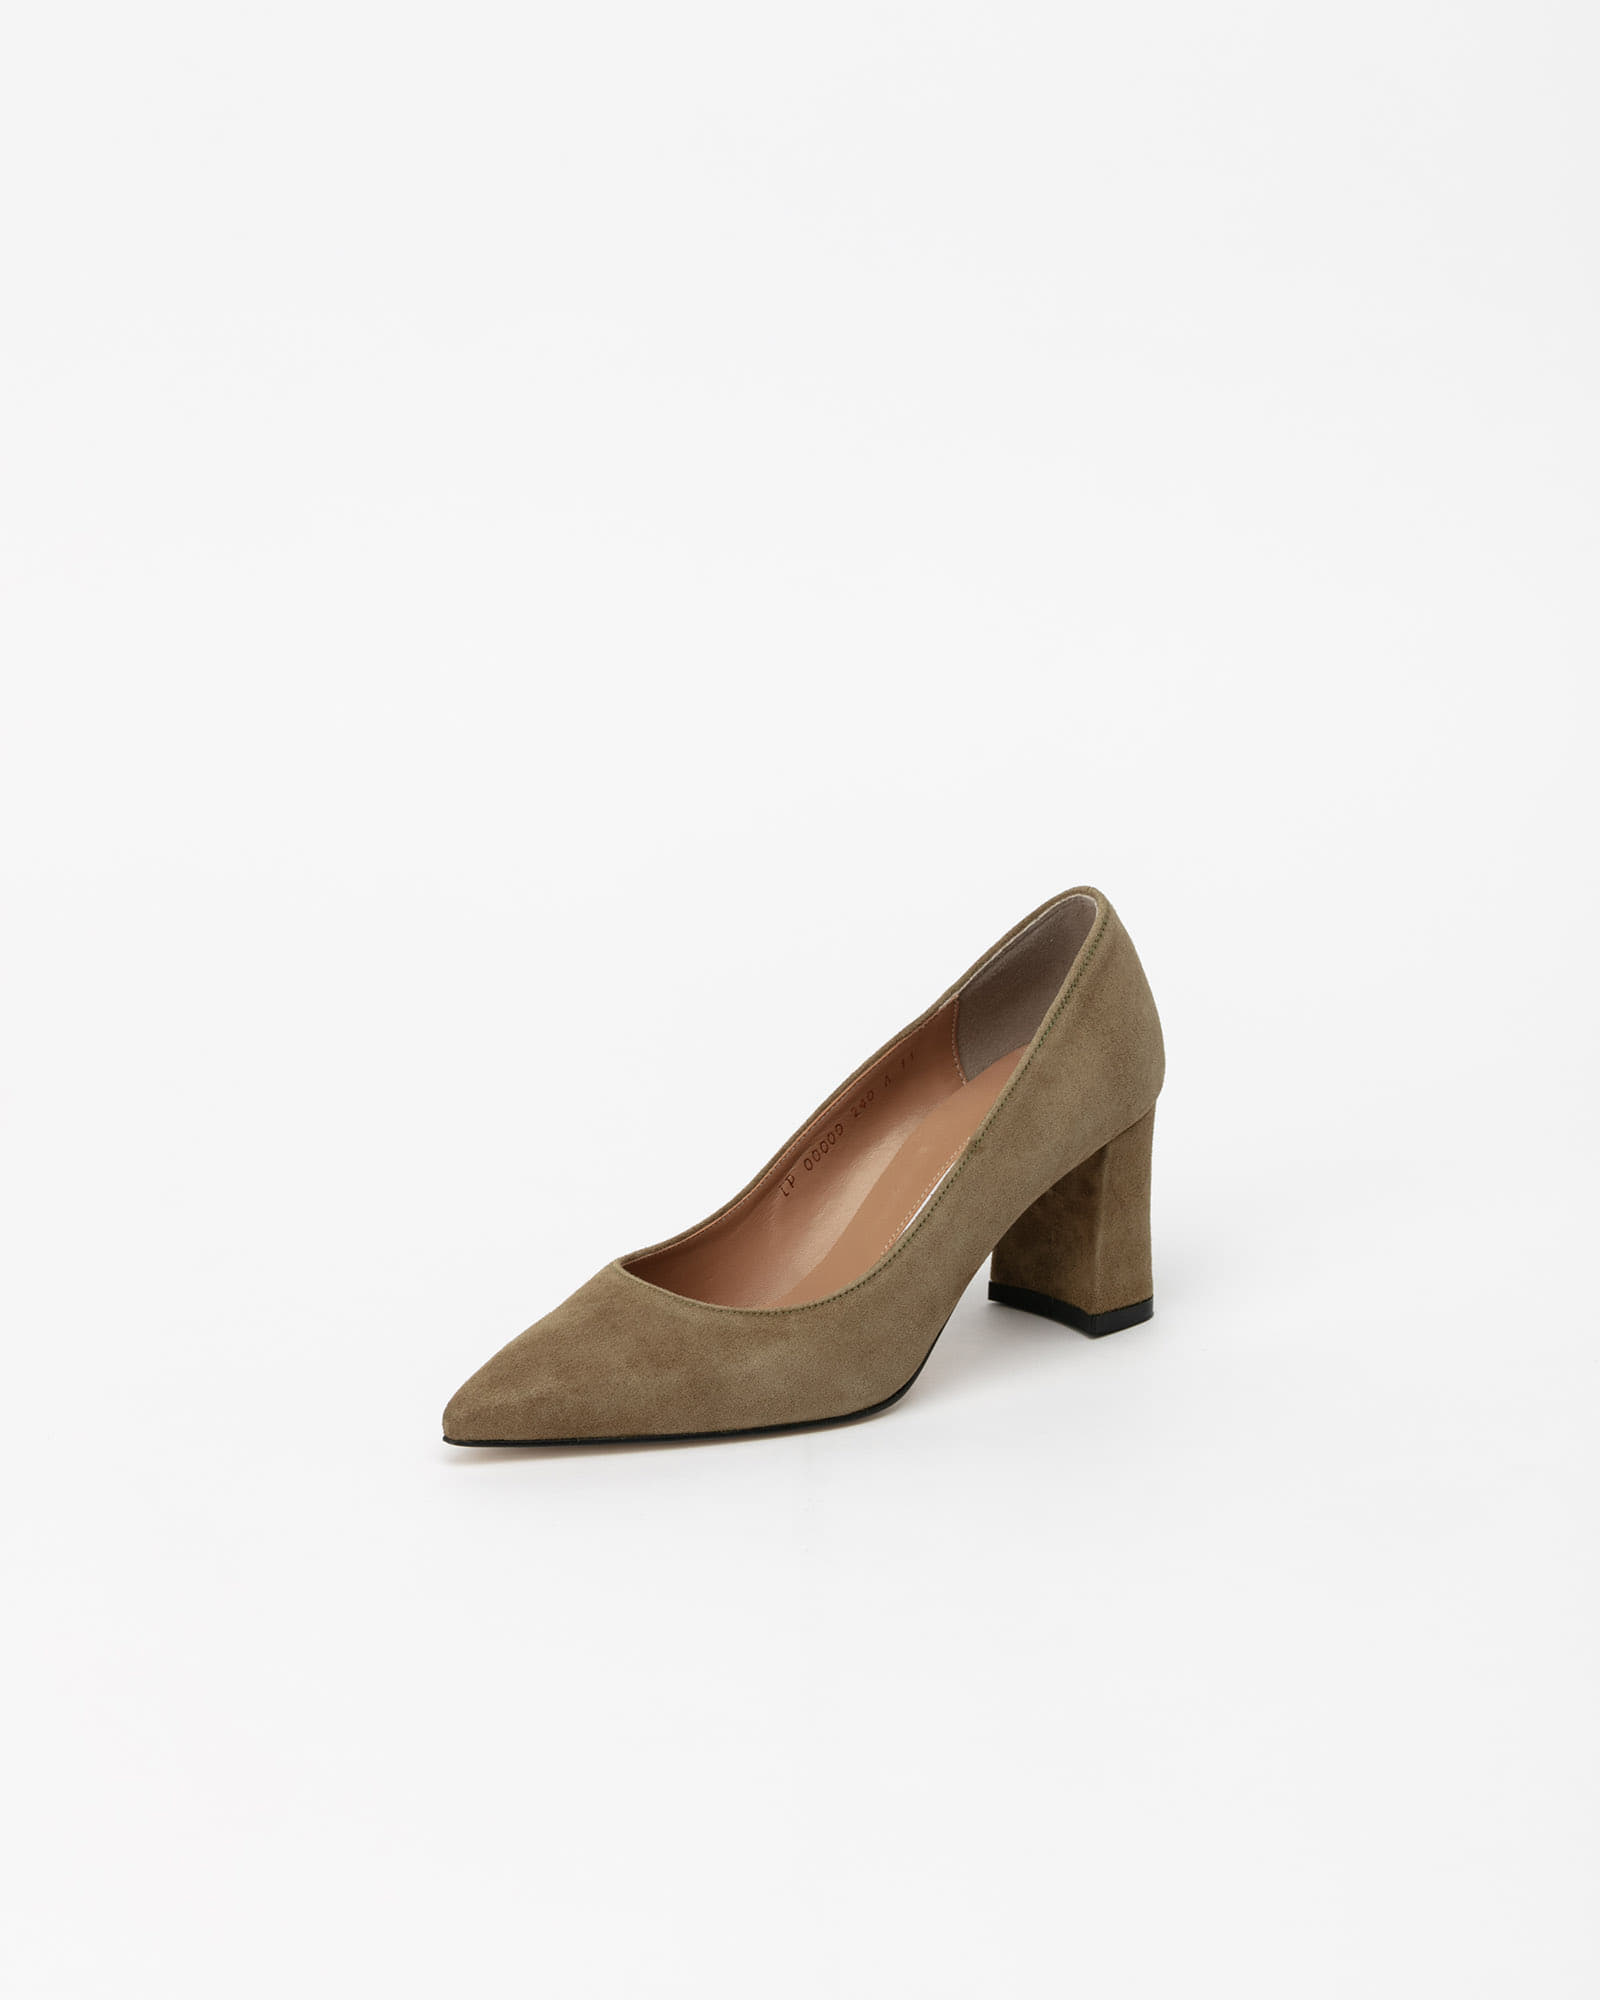 Naff Pumps in Golden Khaki Suede